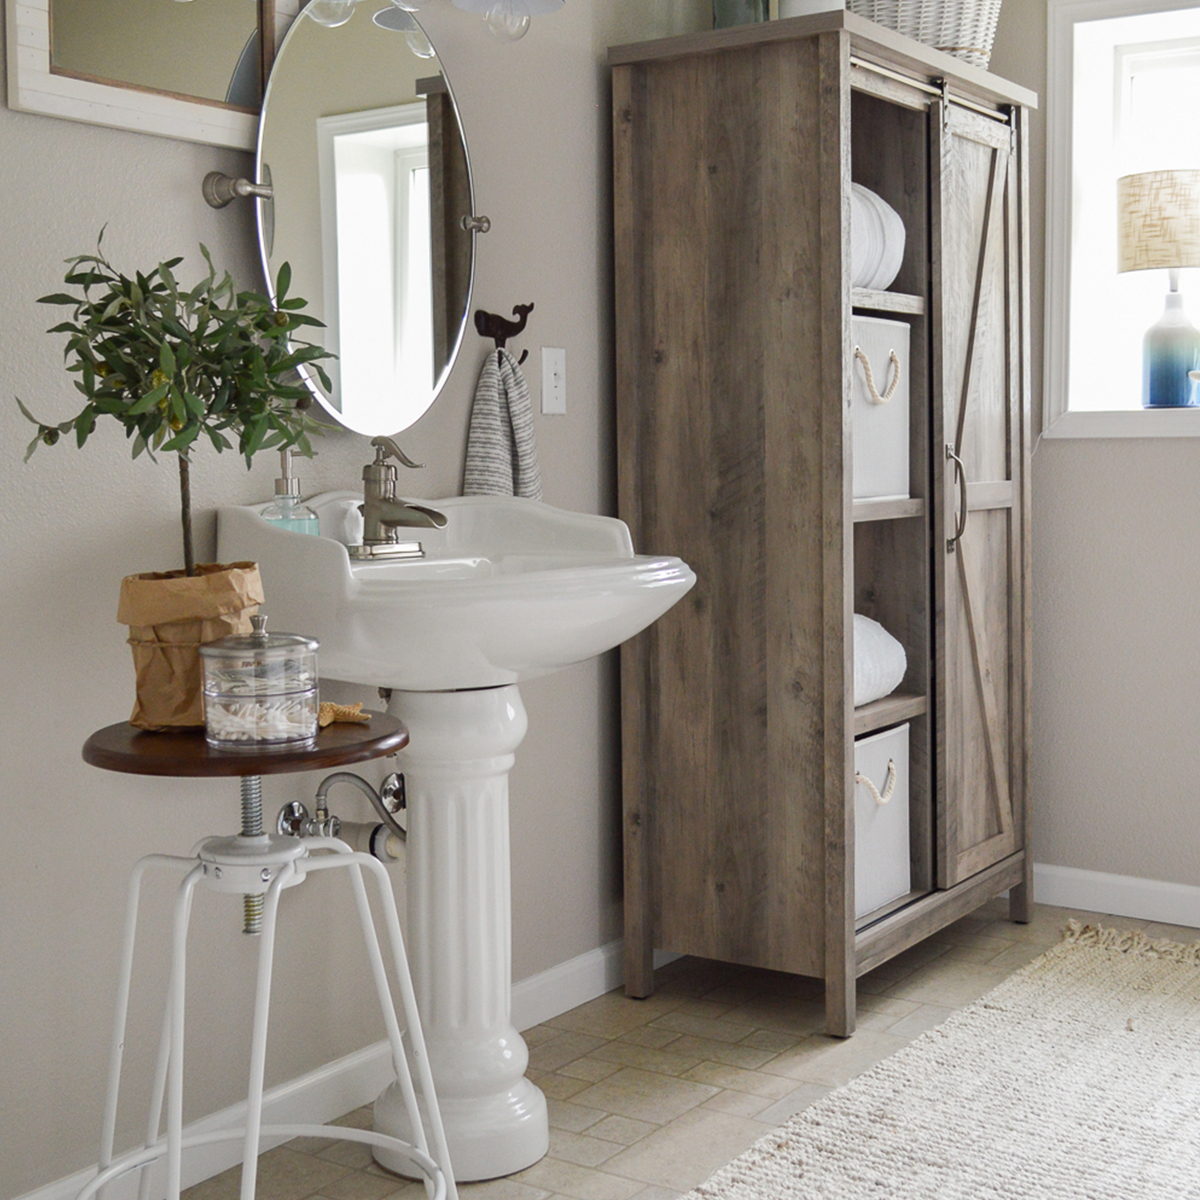 Between the Modern Farmhouse Storage Cabinet, Collapsible Fabric Storage Cubes, and the Adjustable-Height Spin Stool, Shannon Fox of Fox Hollow Cottage creates the ideal farmhouse DIY bathroom makeover. photo